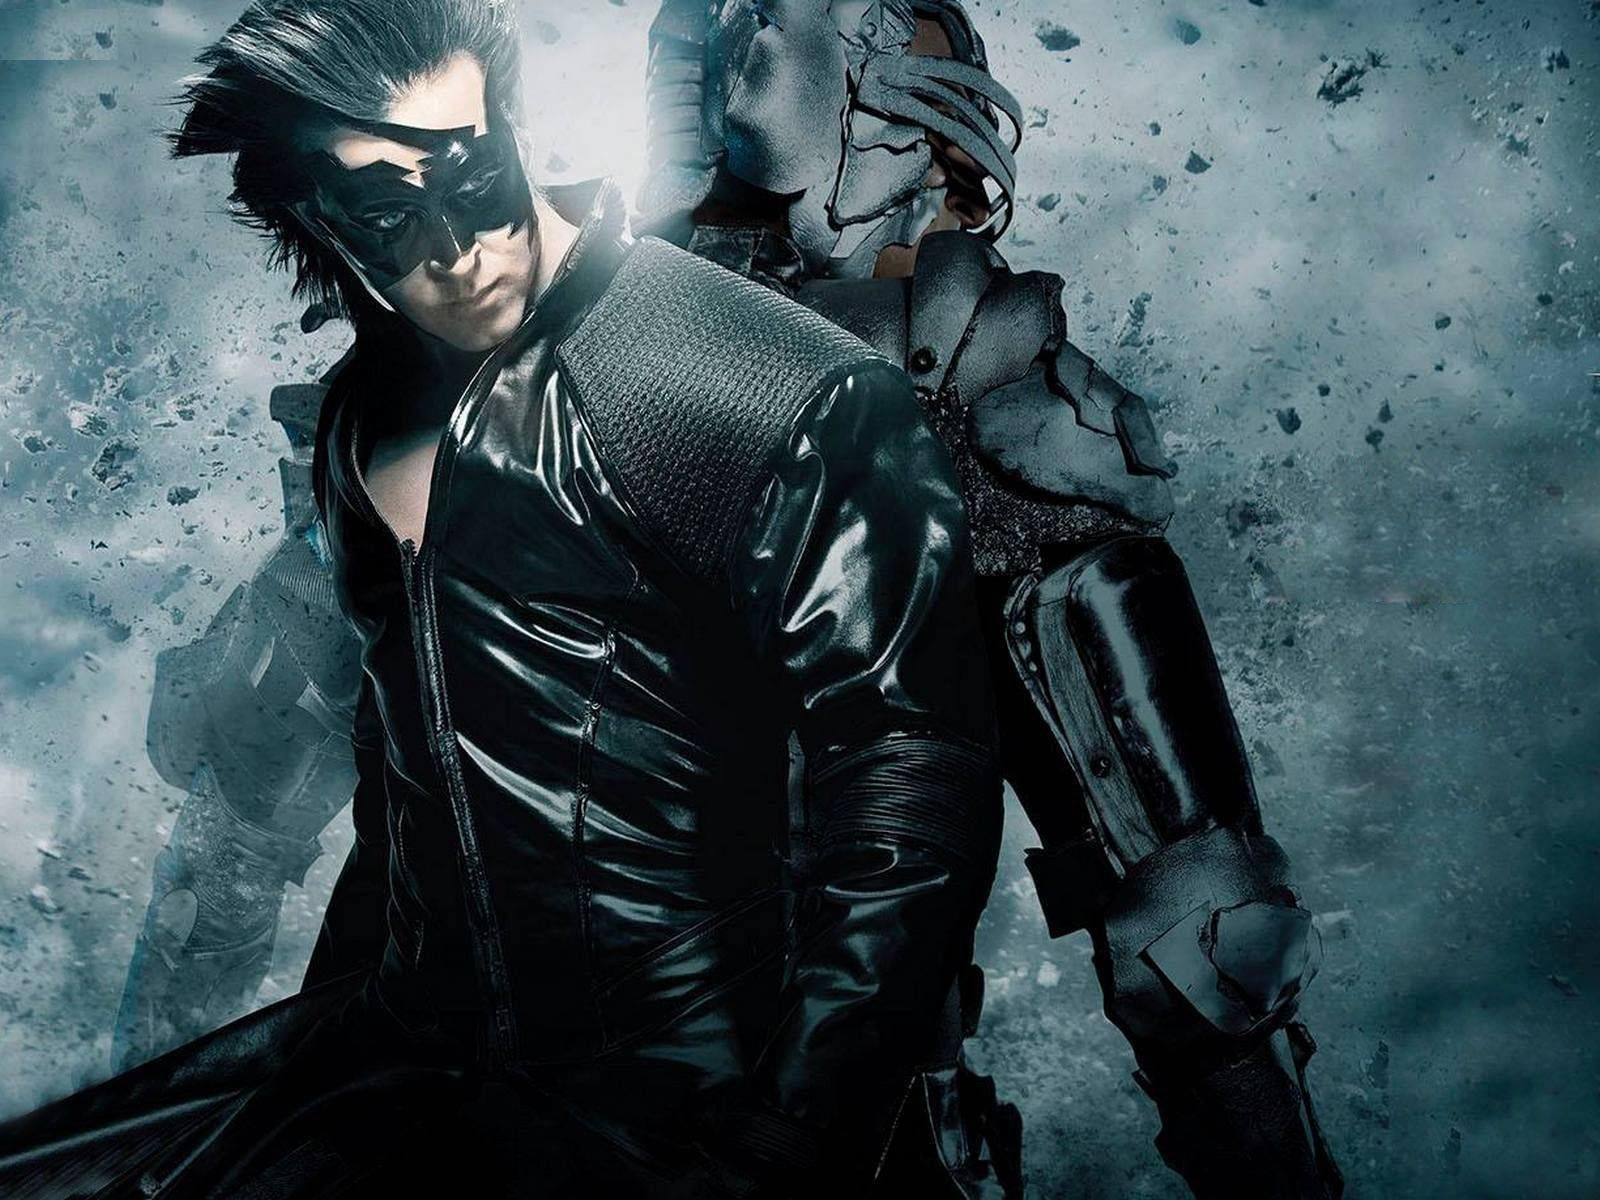 33 krrish in indian movie krrish 3 free download hd wallpapers of